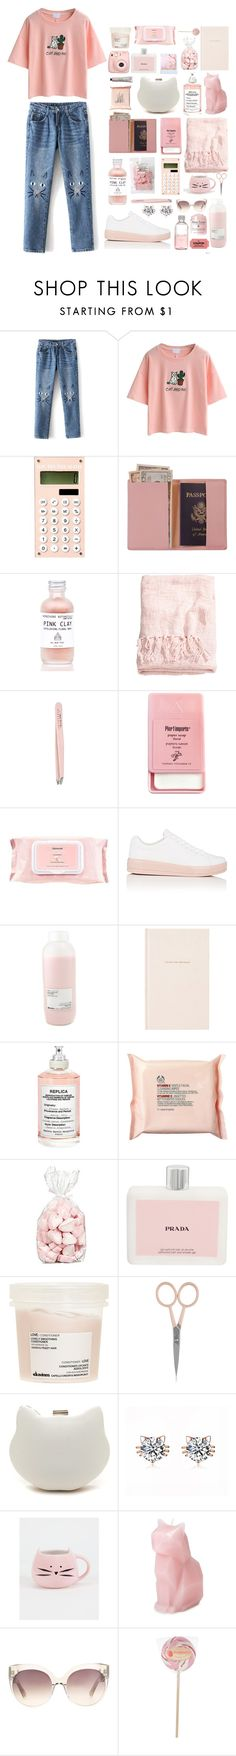 """""""PinkFoot"""" by kate-kat-kit ❤ liked on Polyvore featuring WithChic, Royce Leather, H&M, Anastasia, Pier 1 Imports, Mamonde, Prada Sport, Davines, Kate Spade and Maison Margiela"""